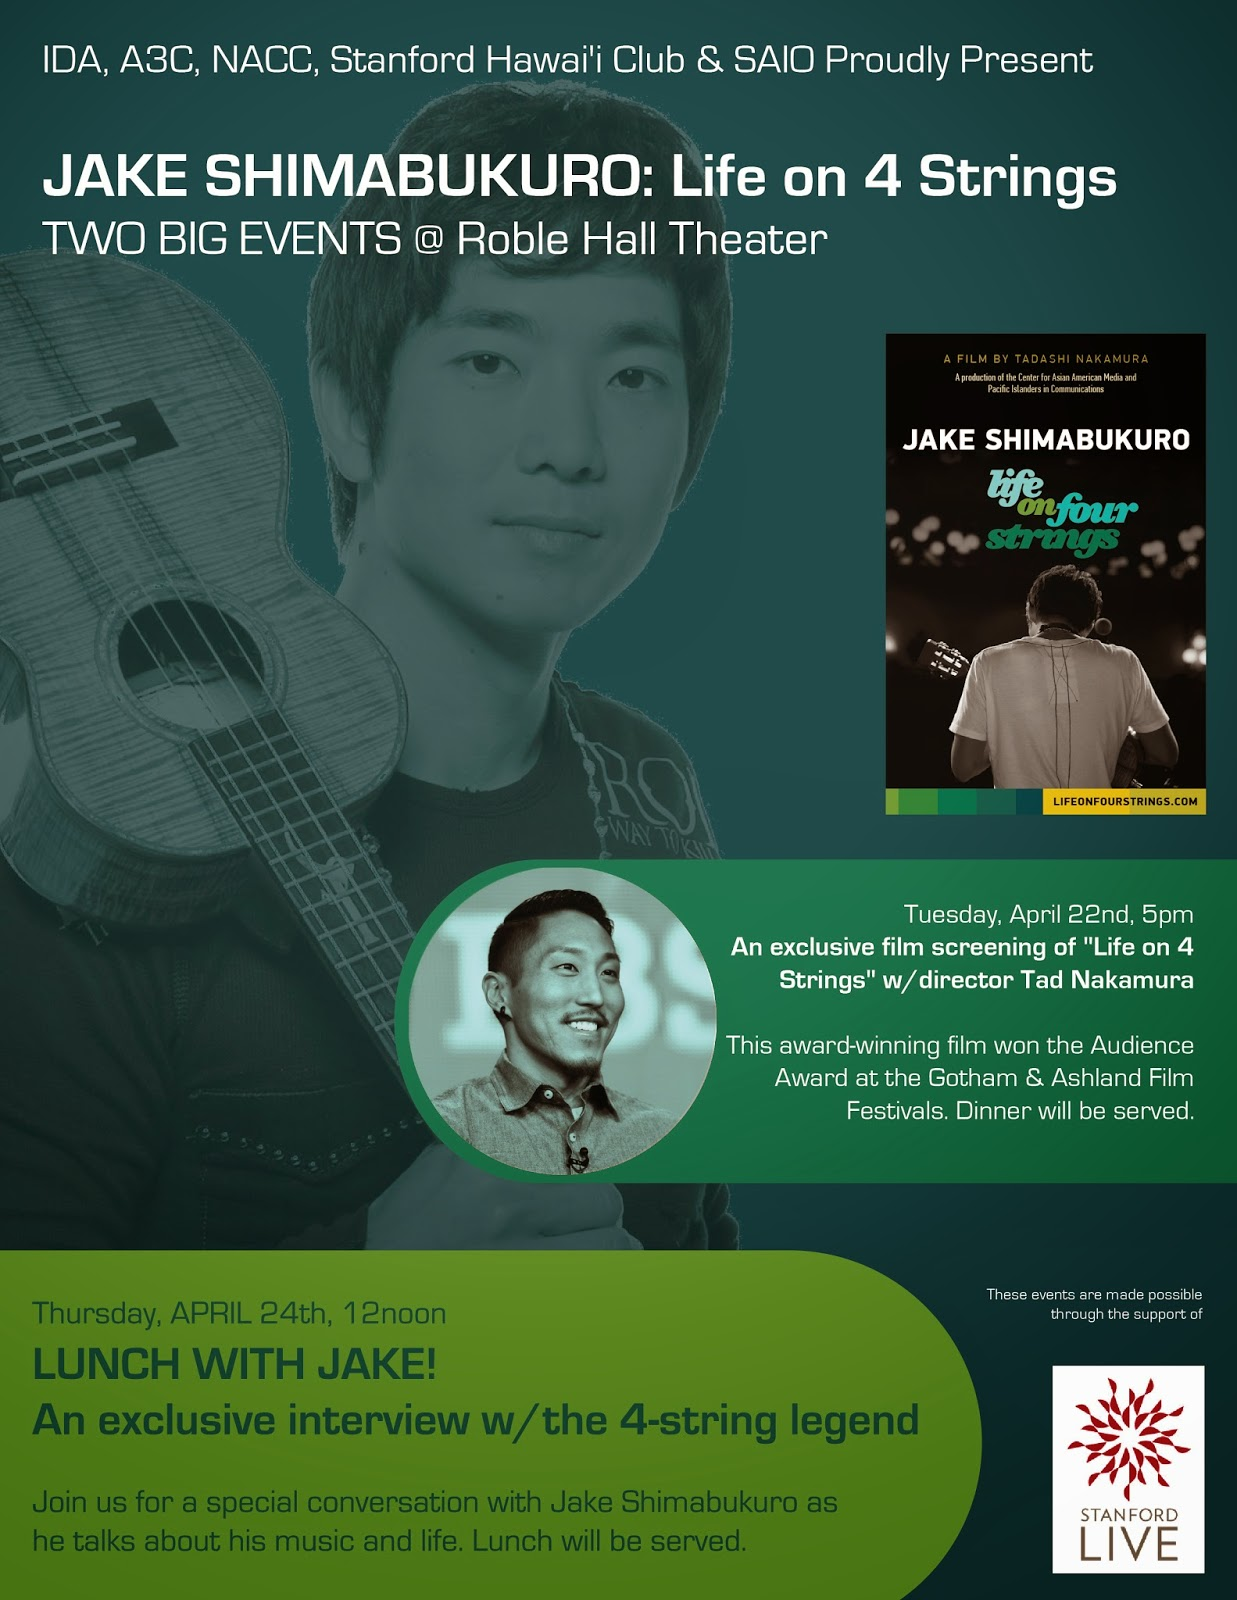 https://diversityarts.stanford.edu/event/jake-shimabukuro-screening